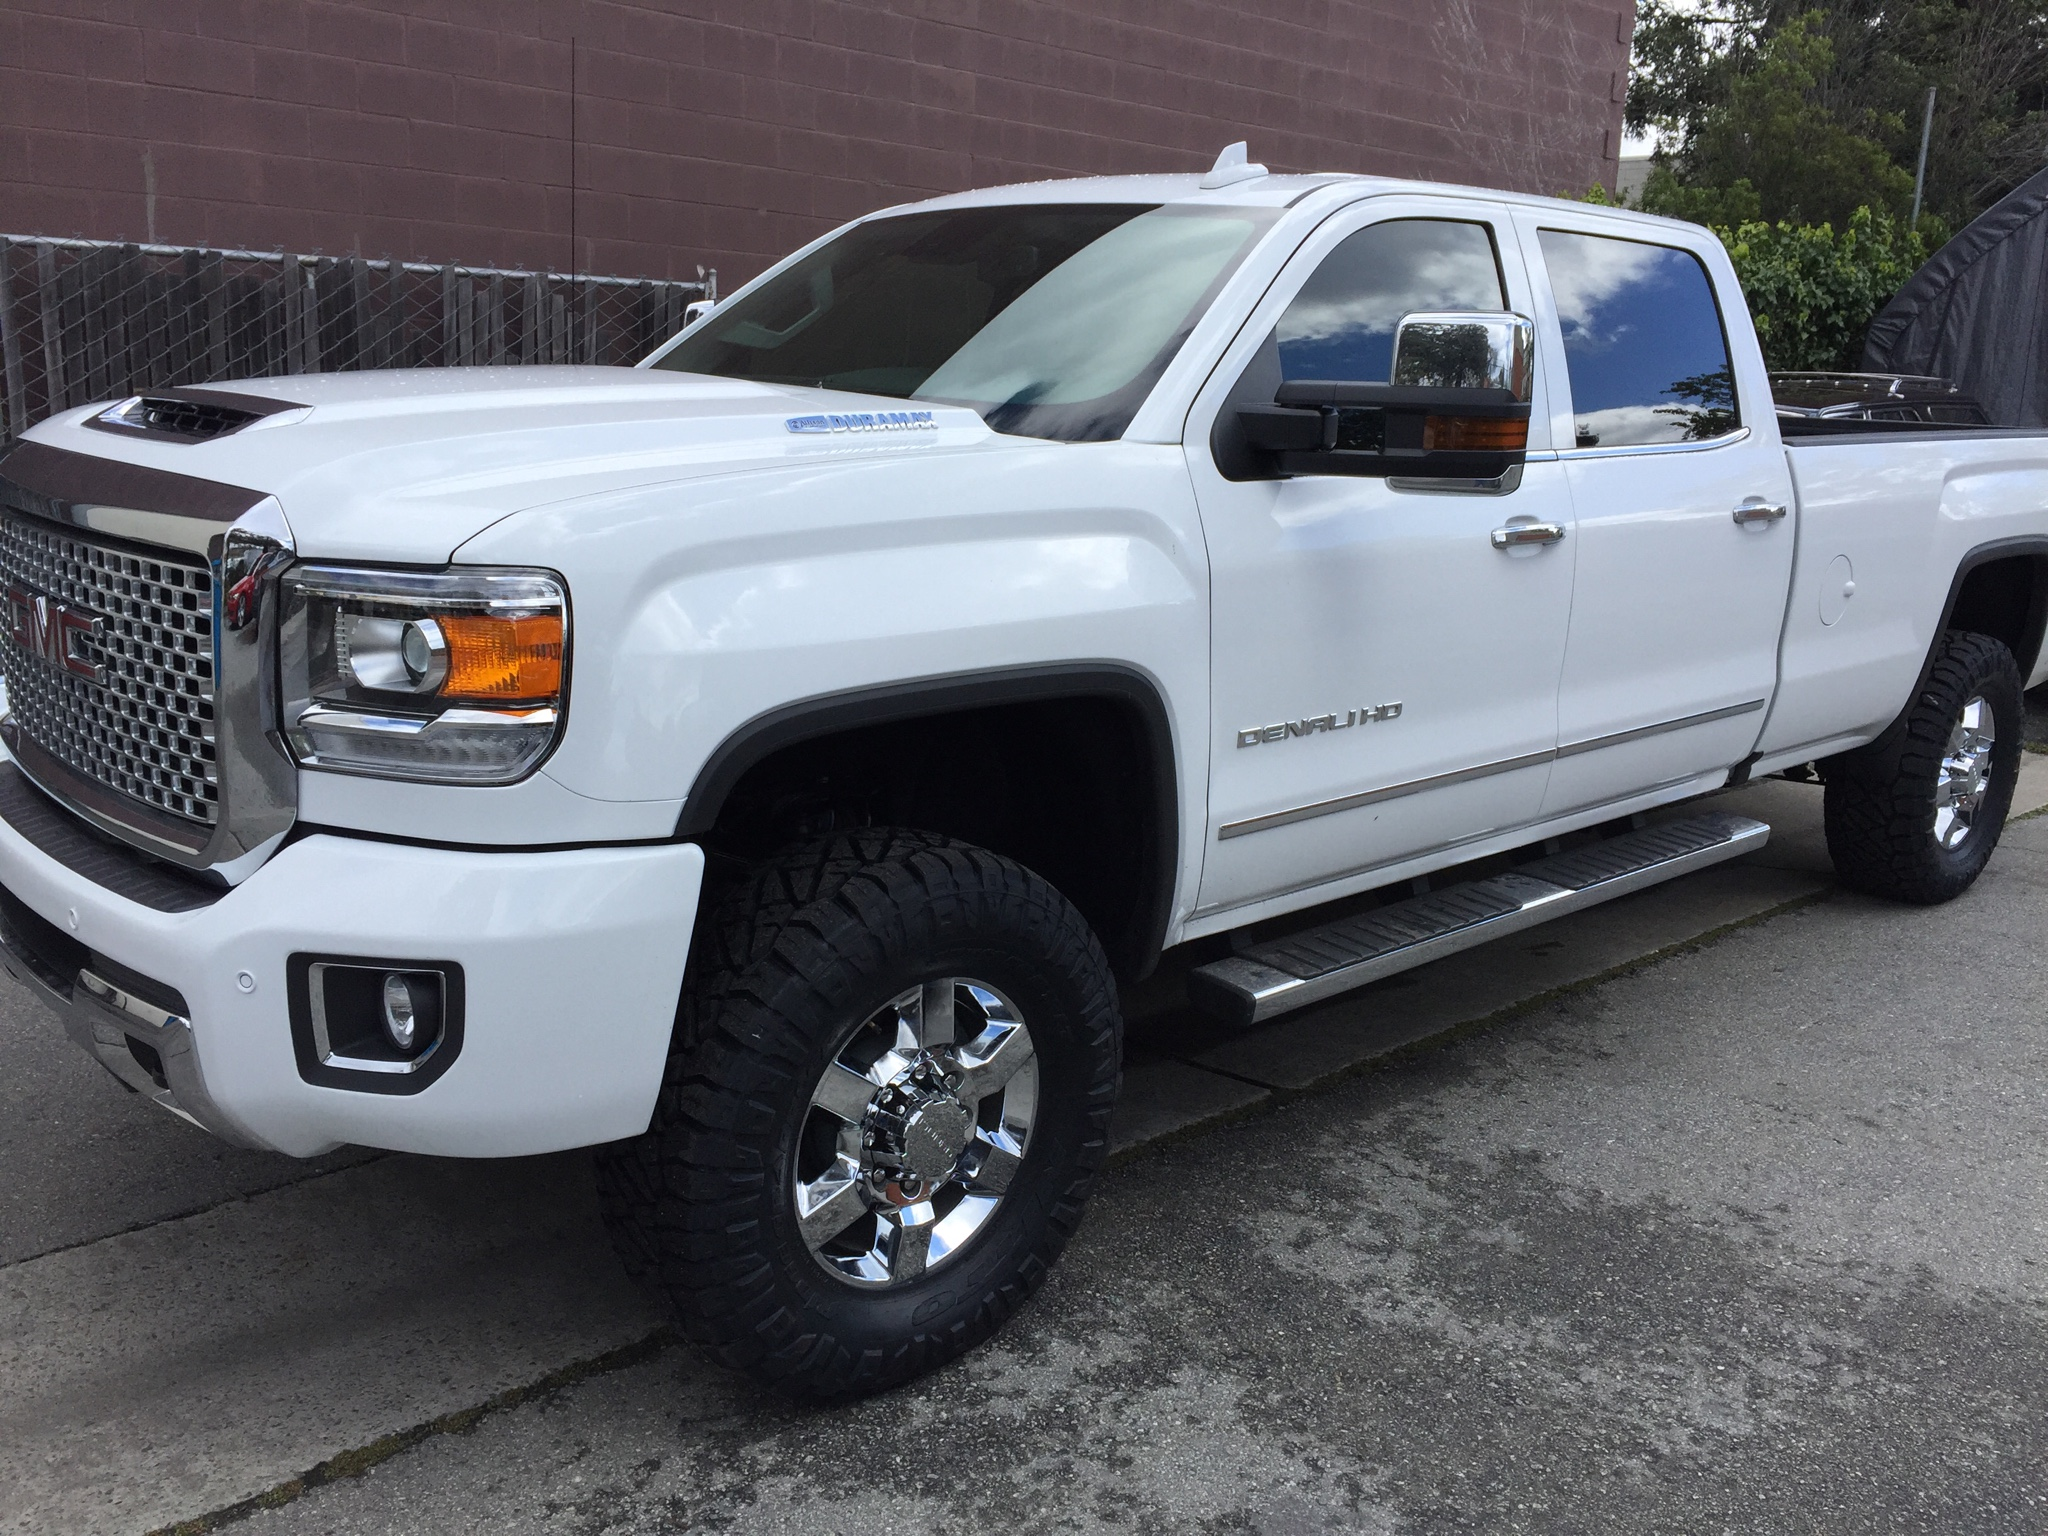 178524 Post Pictures Of Your Body Lifts 2014 as well 2007 in addition Shop anthemwheels as well 21681942079 additionally 883346 2016 17 35s Leveling Kit Only 3. on 2015 gmc sierra